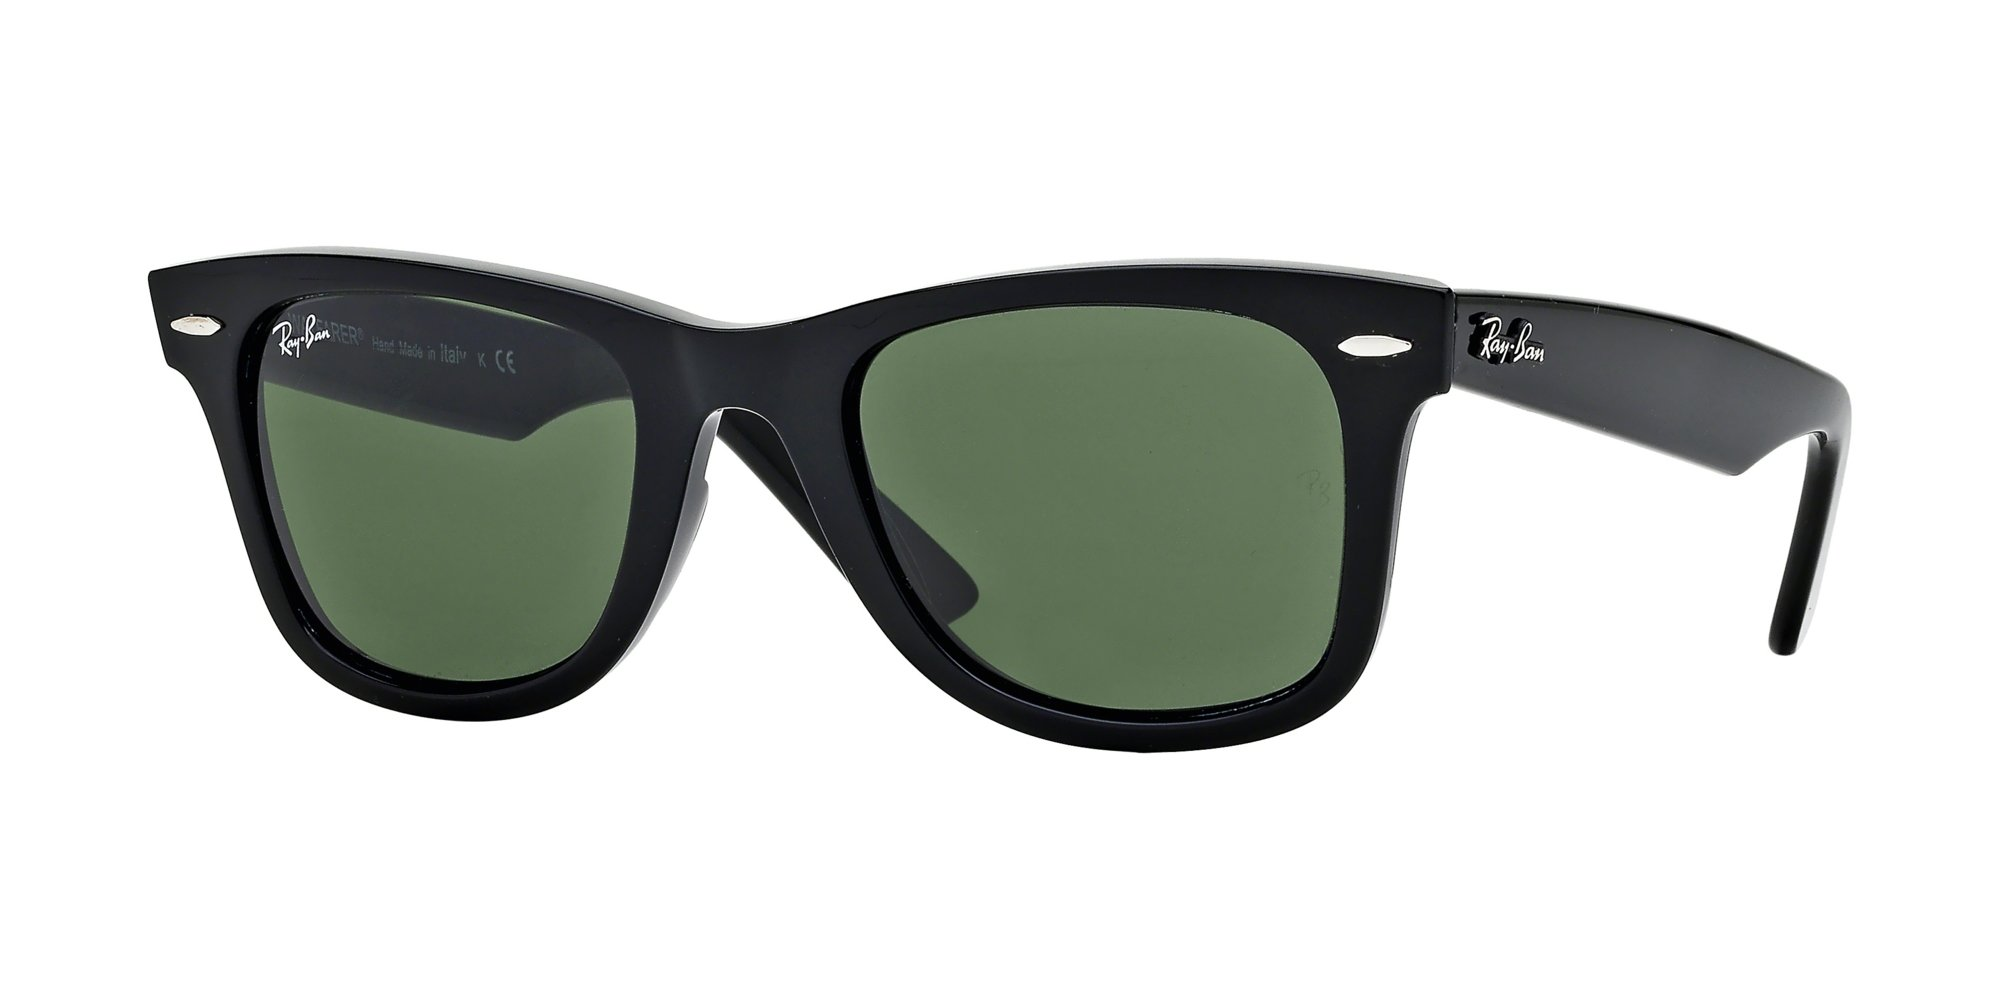 Ray Ban RB2140 WAYFARER 901 54M Black/Crystal Green Sunglasses For Men For Women by Ray-Ban